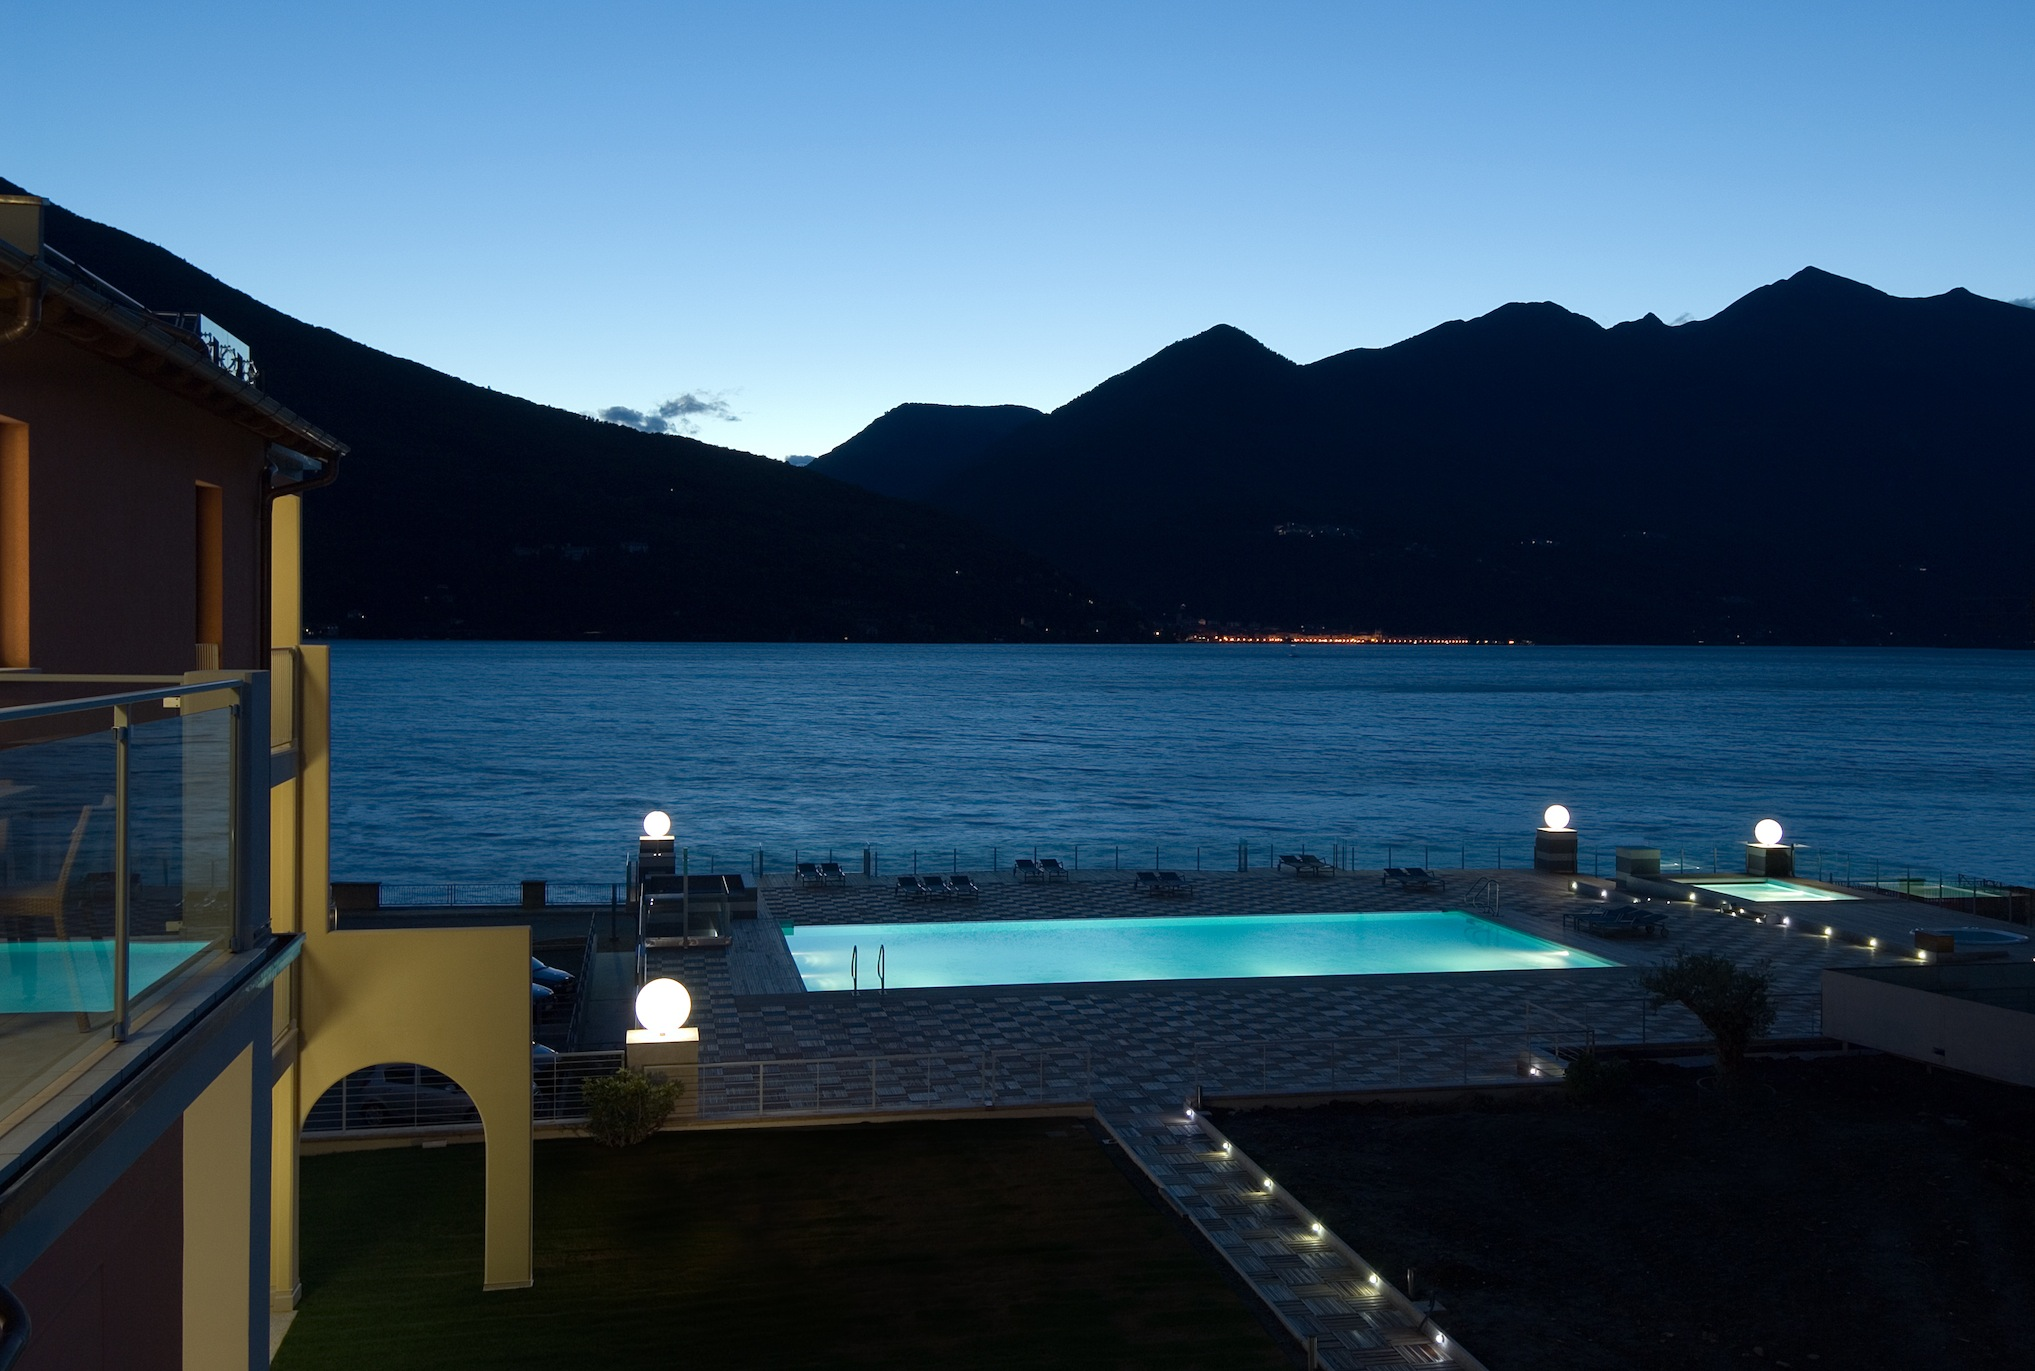 https://www.in-lombardia.it/sites/default/files/accomodation/gallery/105448/32226/by_night.jpg